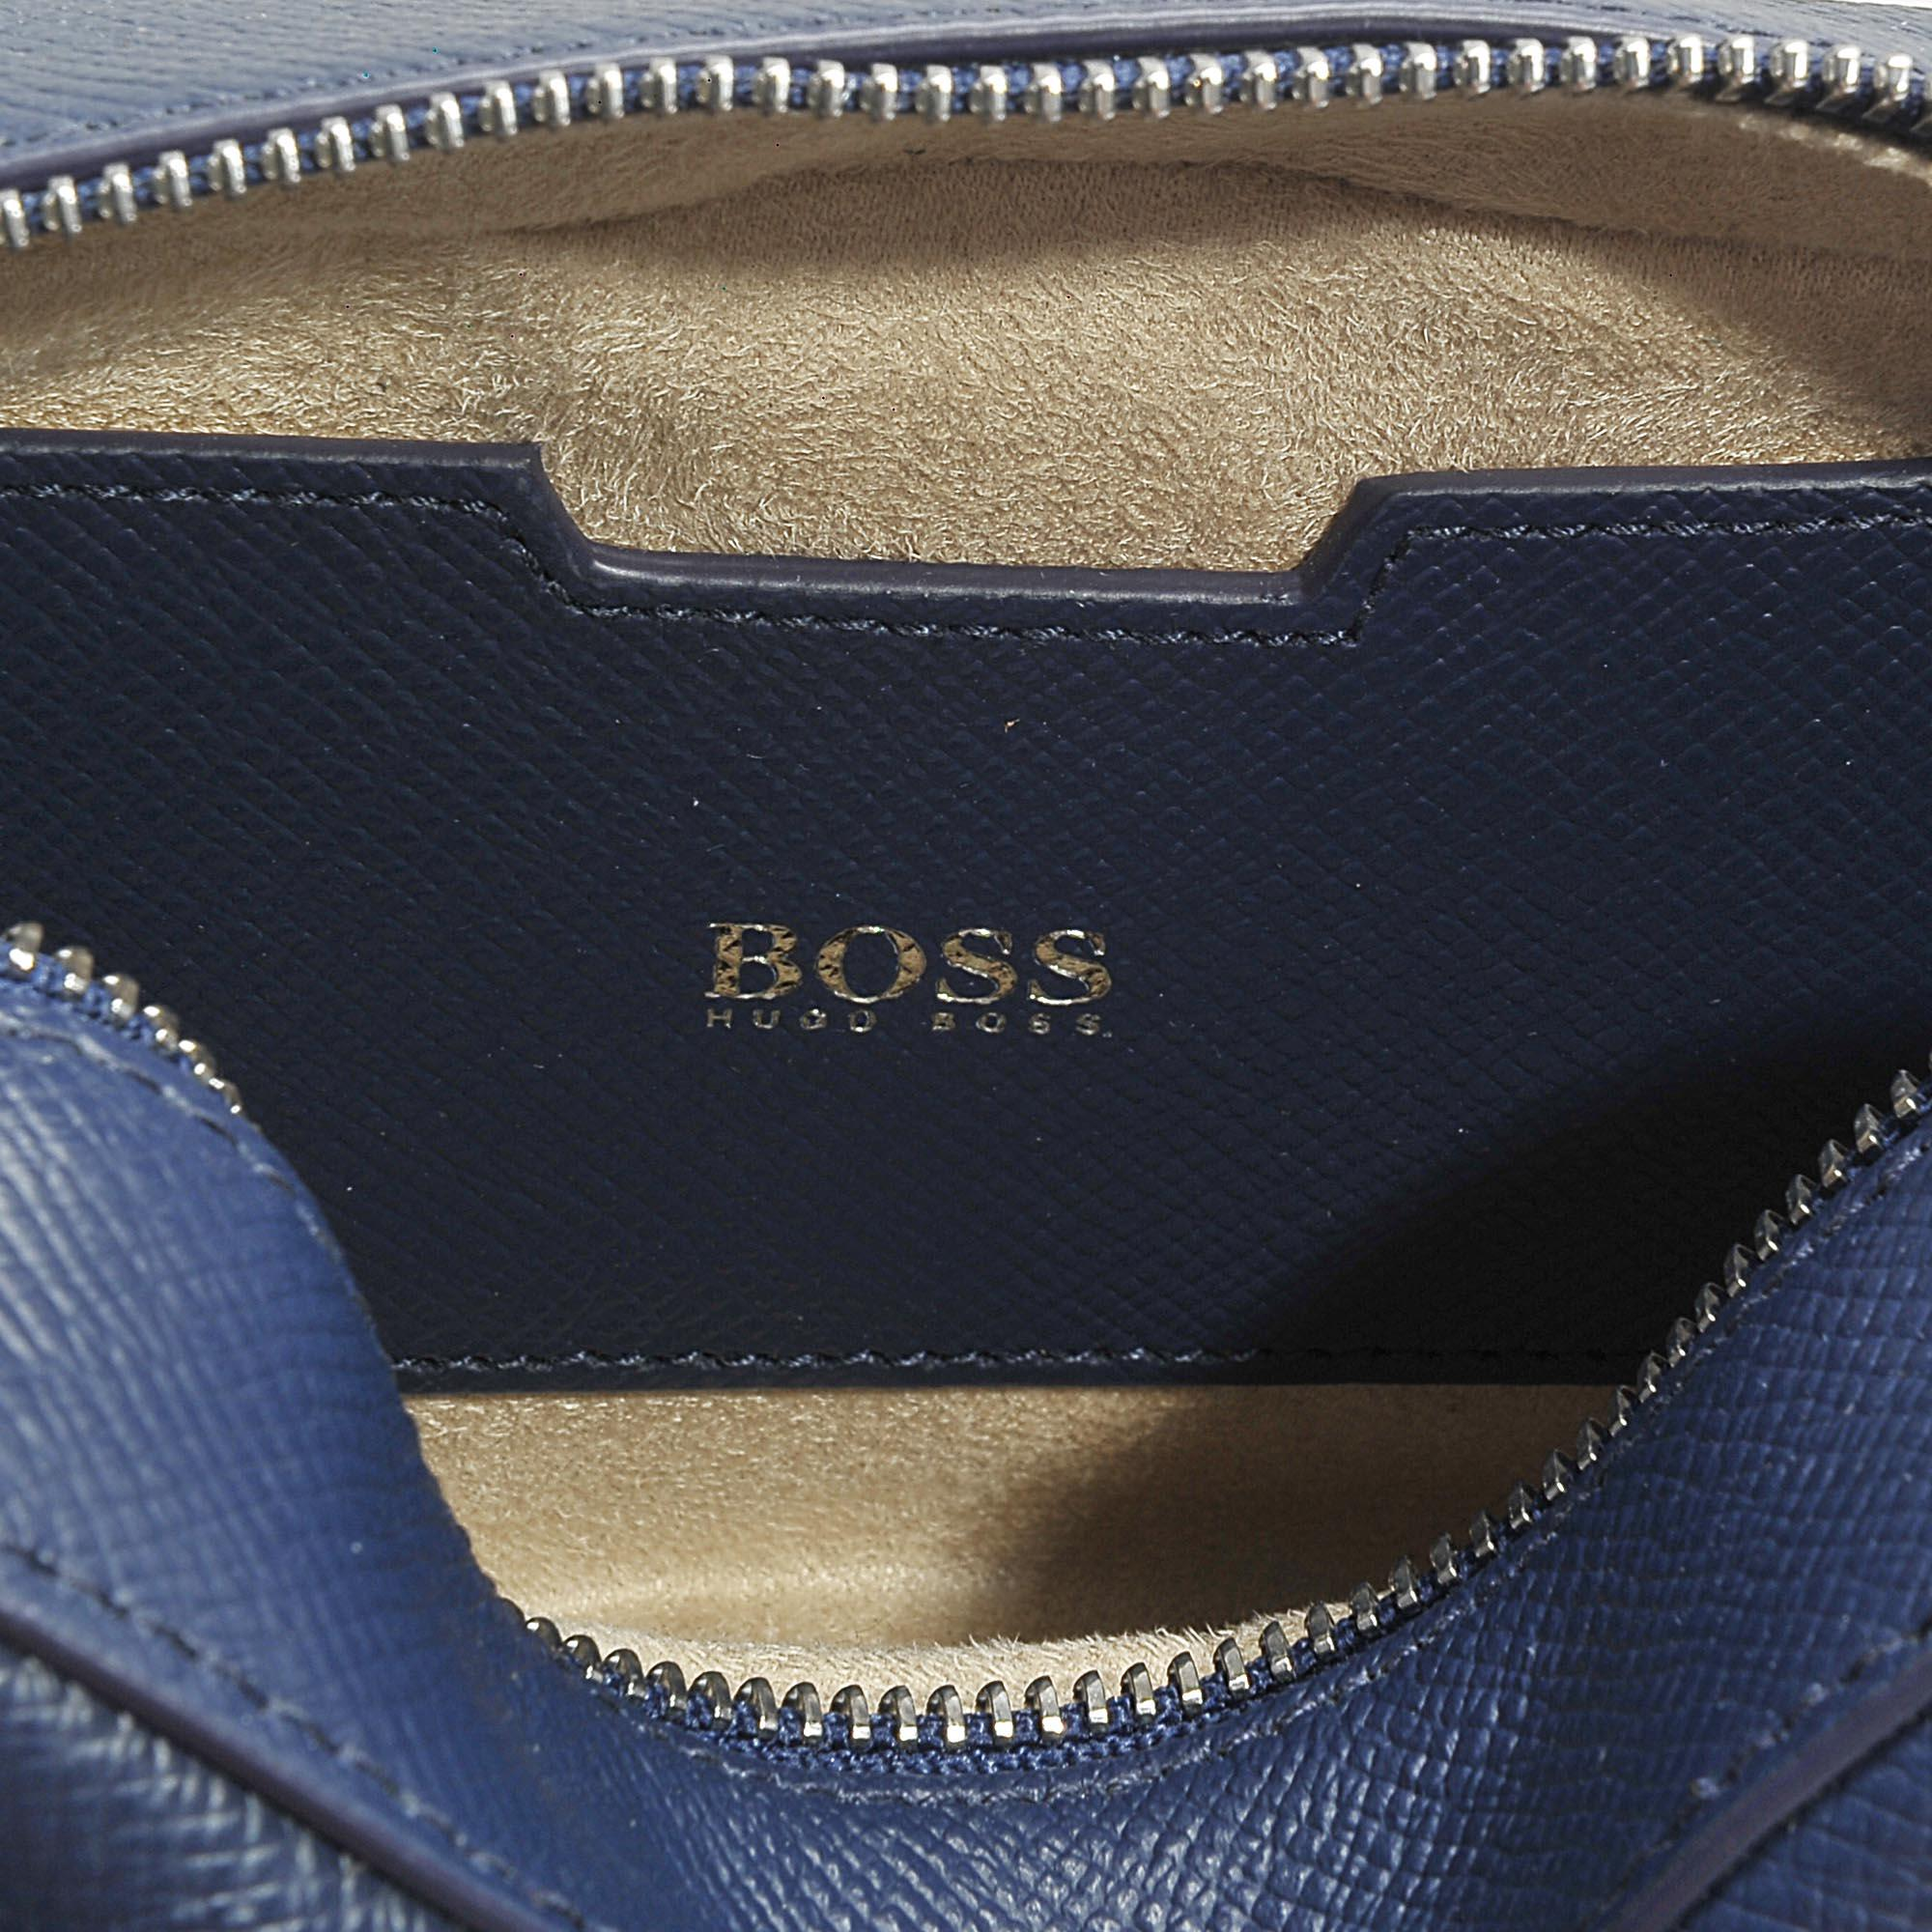 Taylor Lasered Crossbody Bag in Medium Blue Lasered Saffiano Printed Calfskin HUGO BOSS 8Zs8XVt